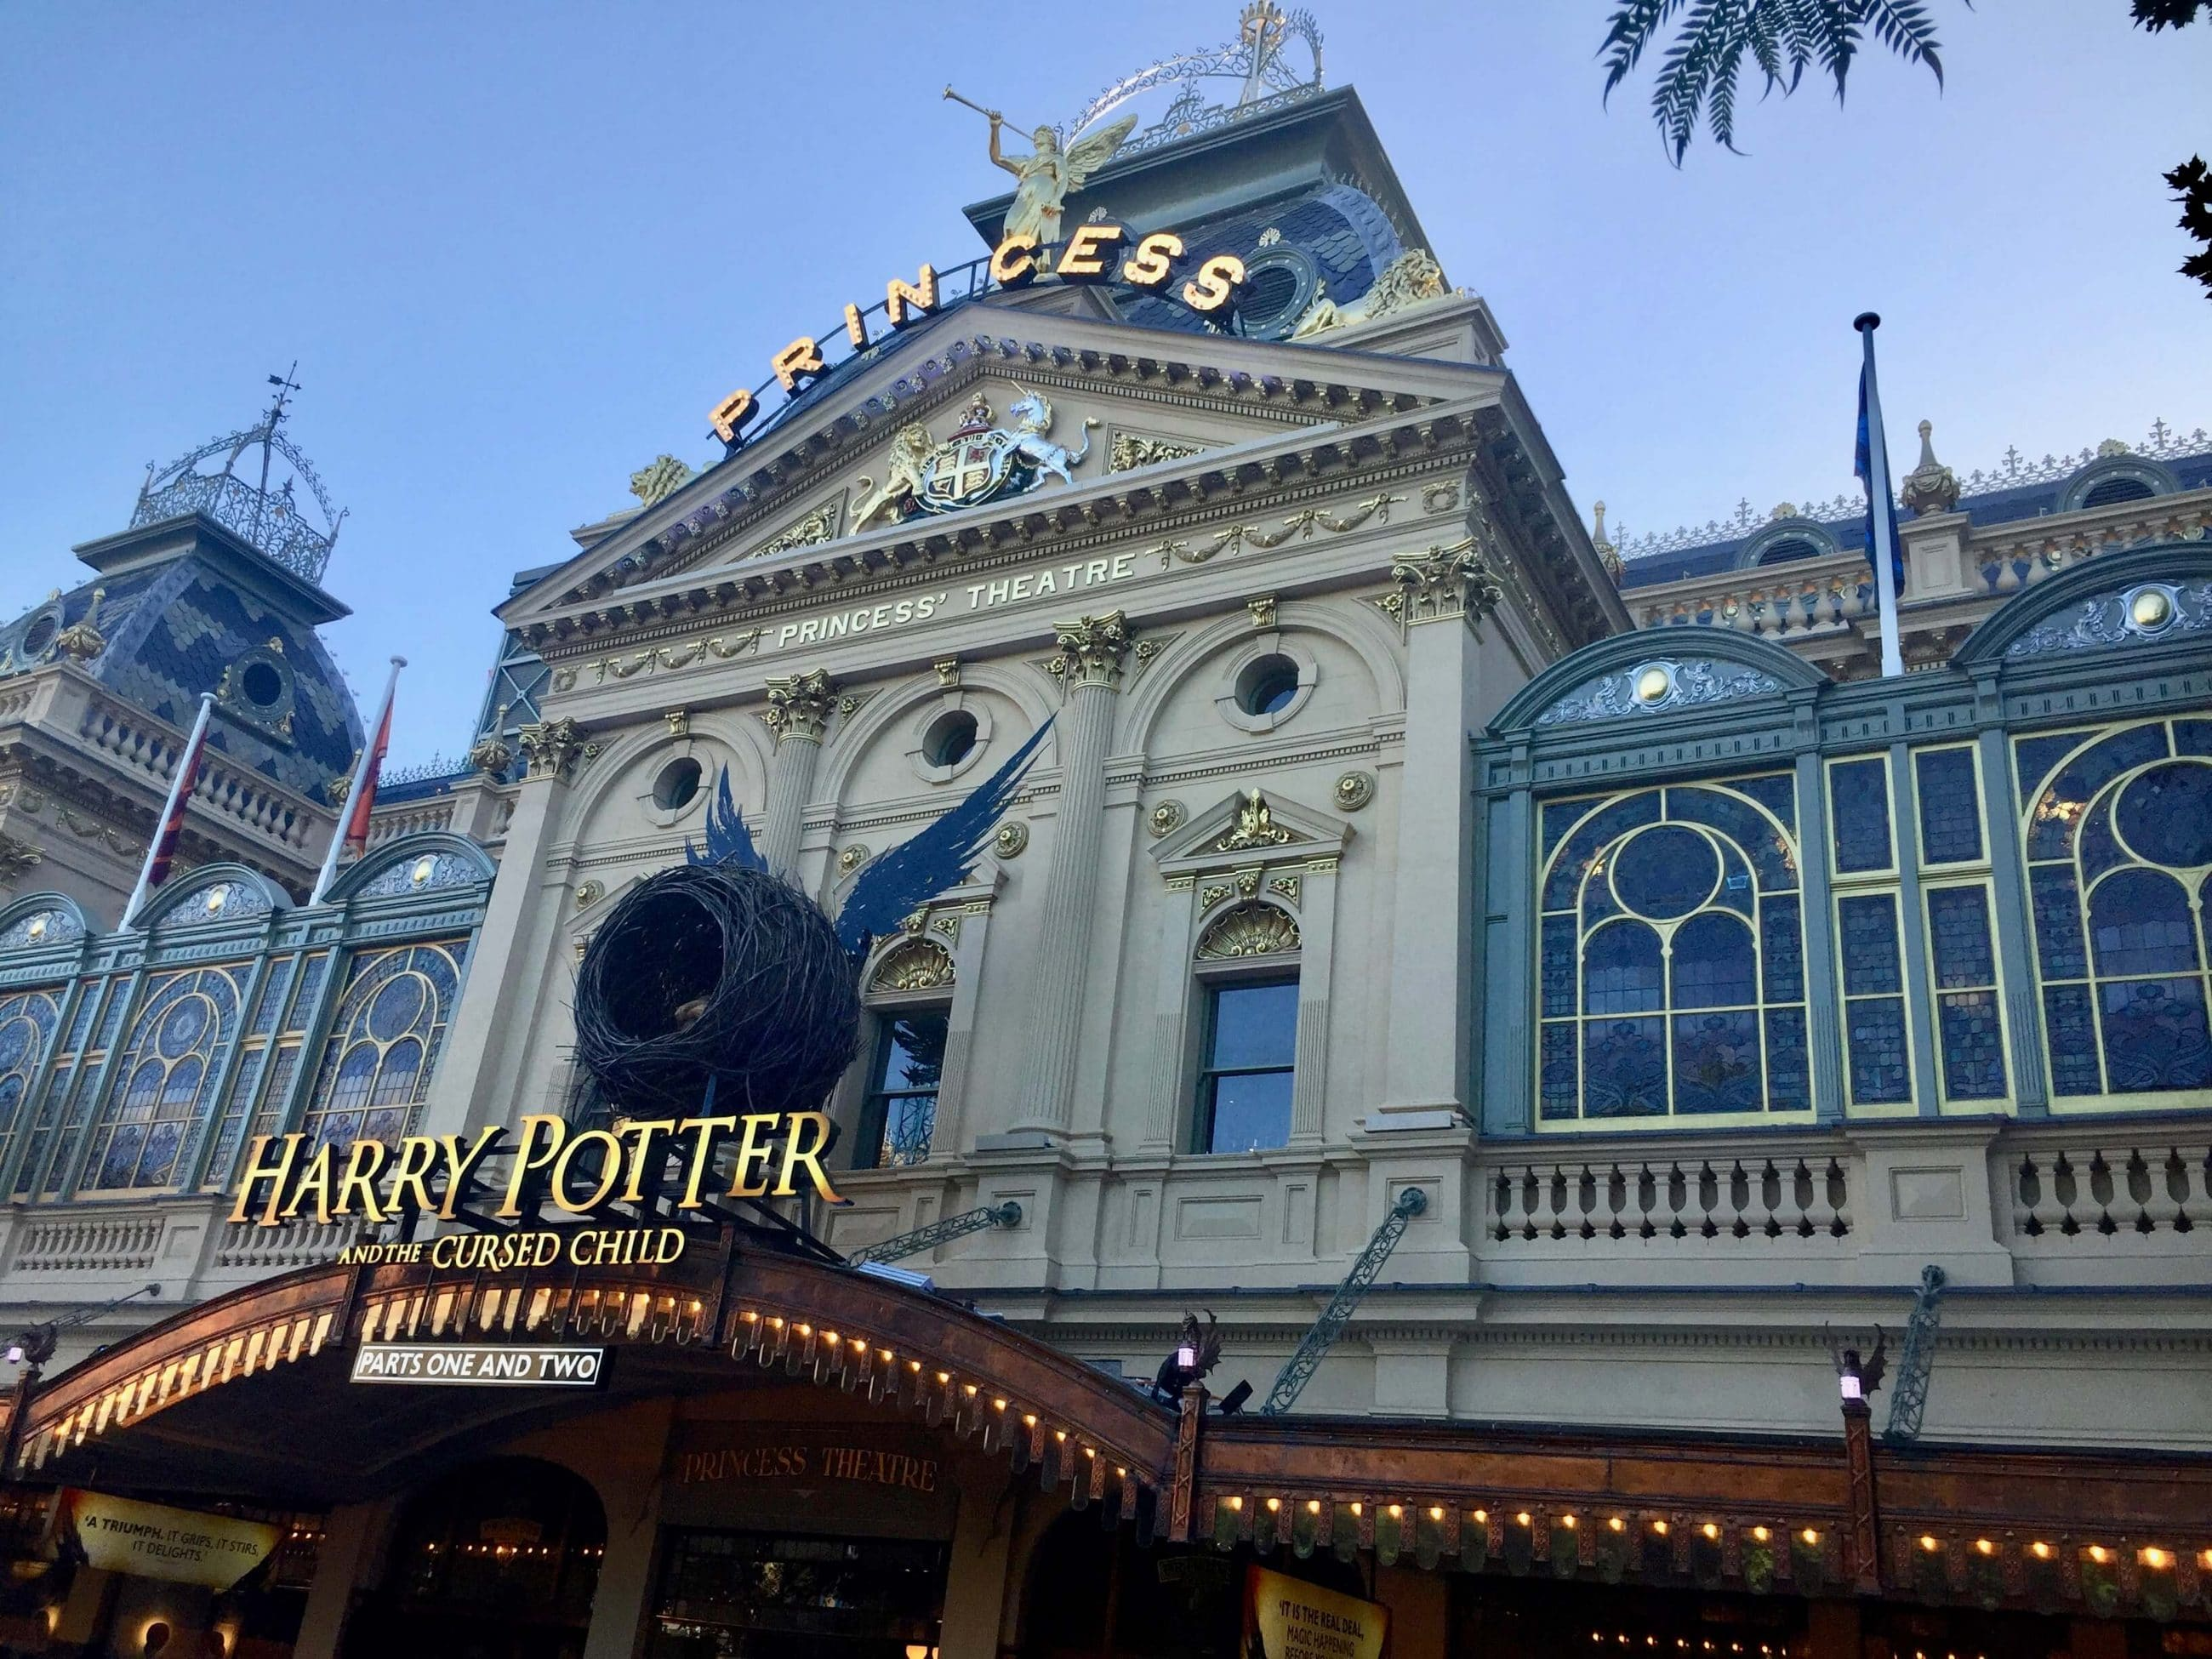 Harry Potter Cursed Child Melbourne